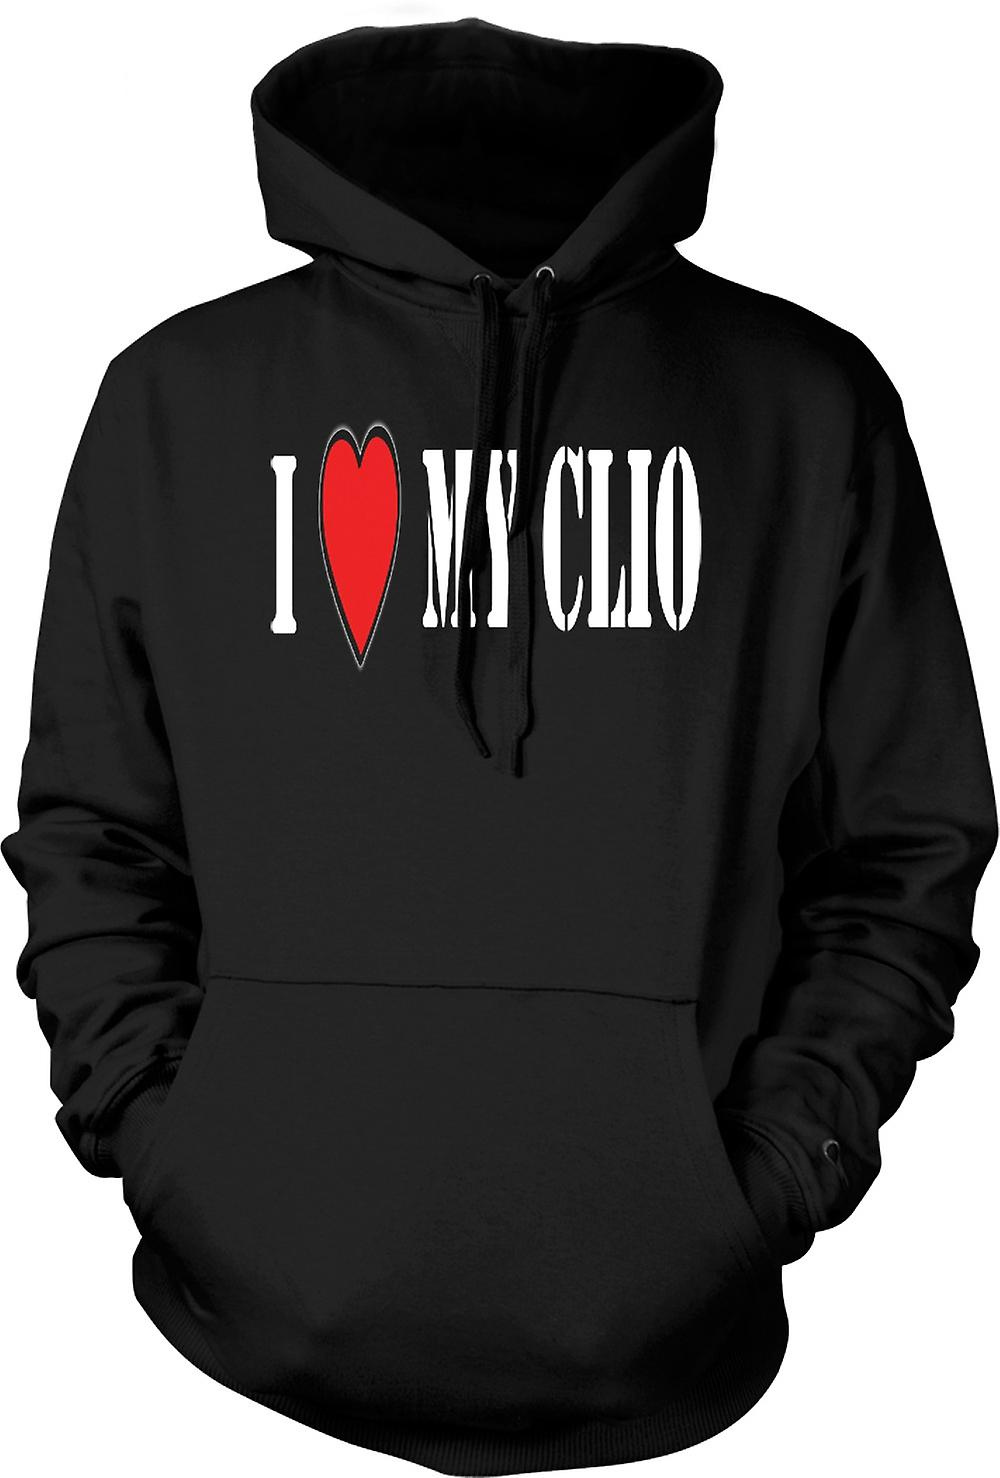 Mens Hoodie - I Love My Clio - Fun Car